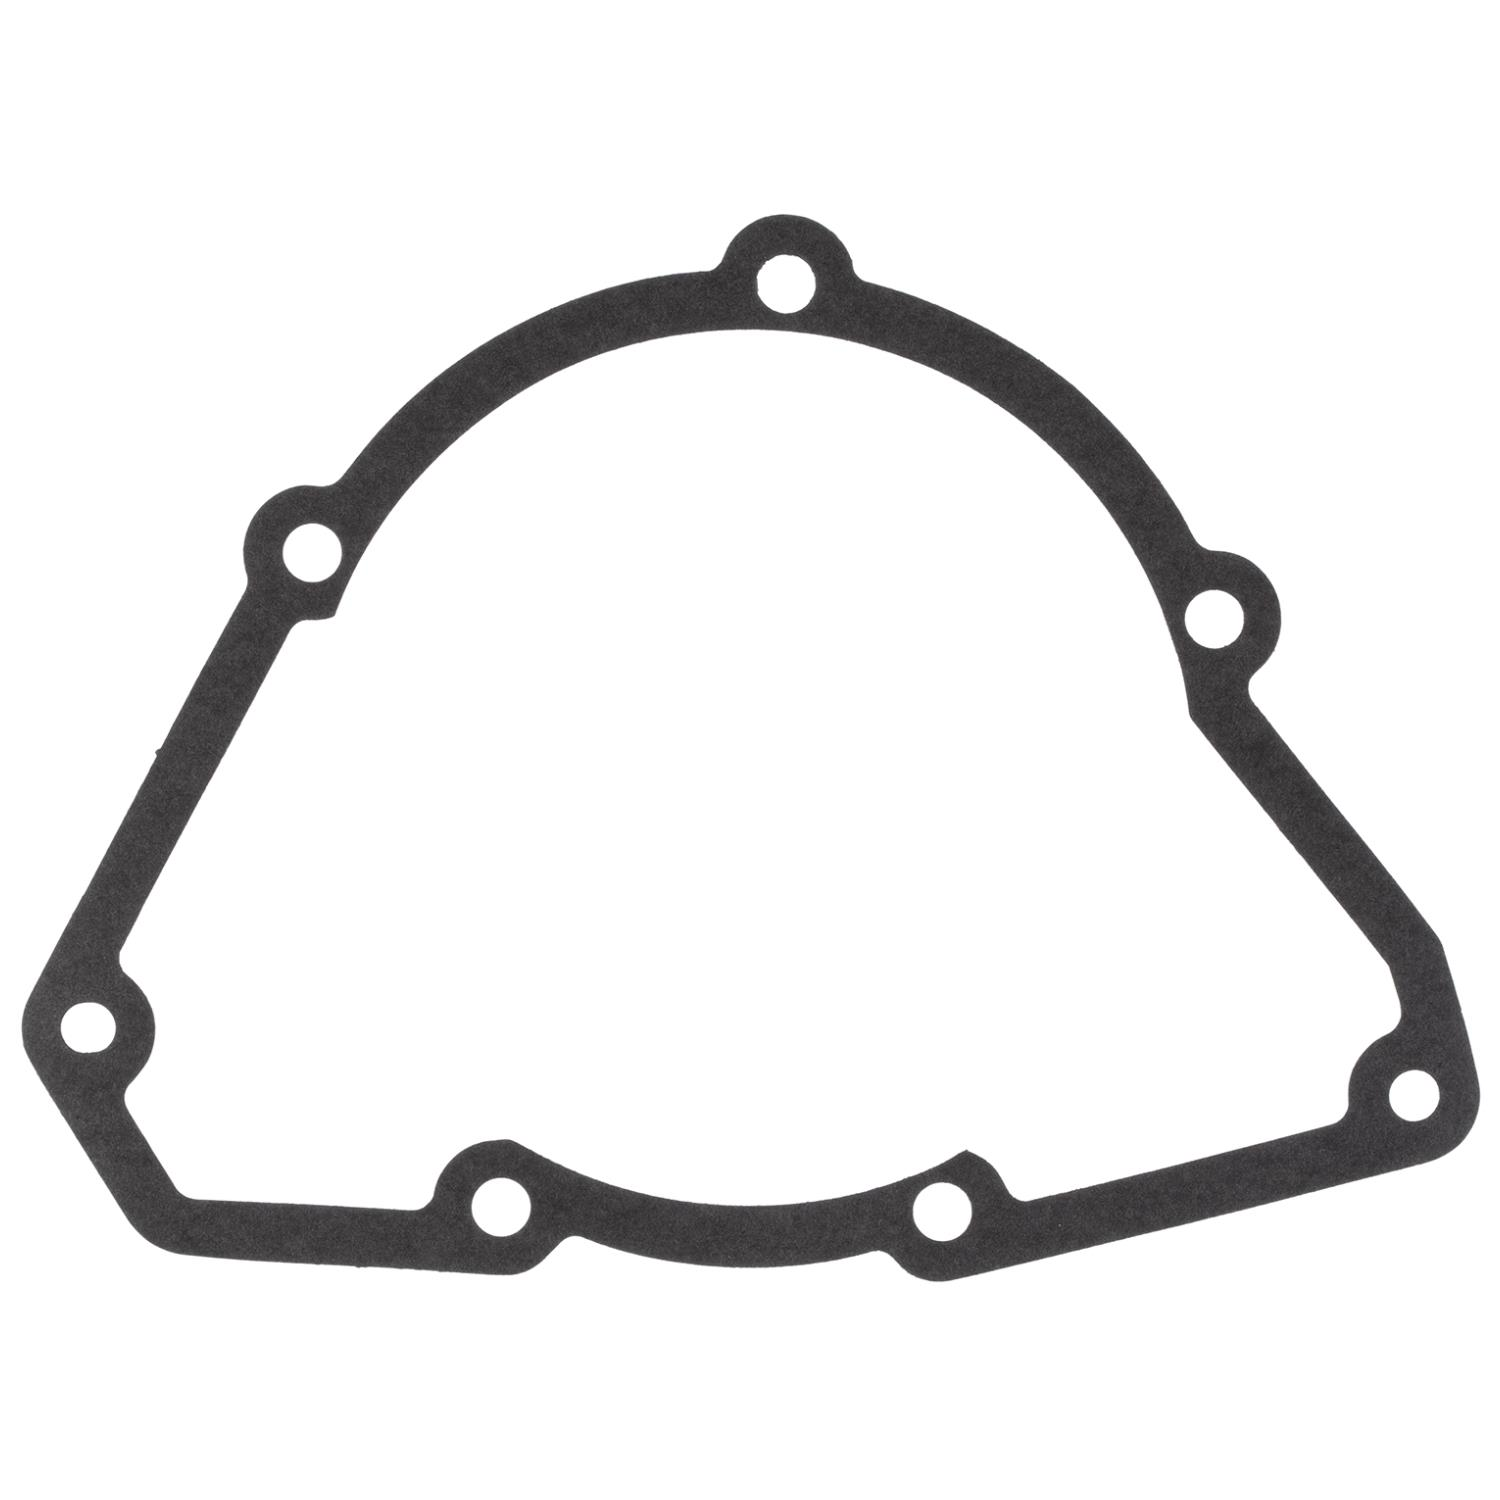 ATP Automotive FG-21 Extension Housing Gasket